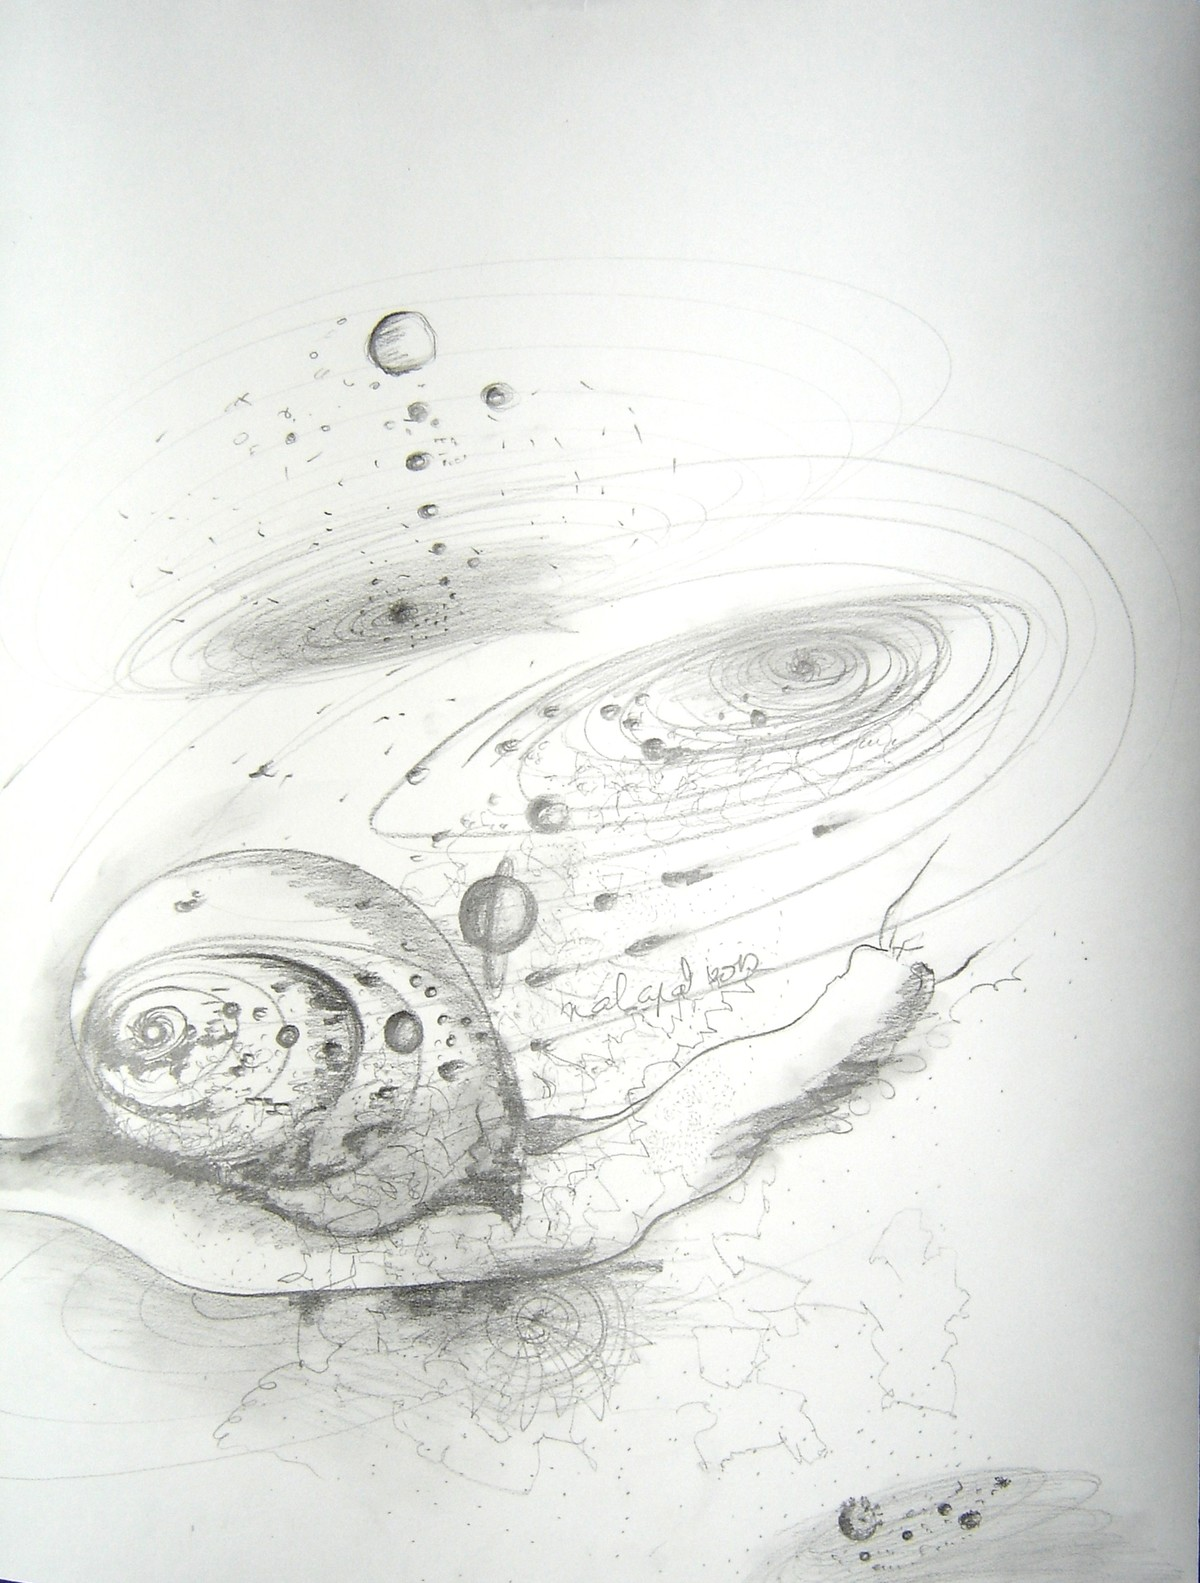 Tortoise Nautilus Venus and Us-The spiral connections that we share by Anuradha Nalapat, Illustration Drawing, Charcoal on Paper, Gray color